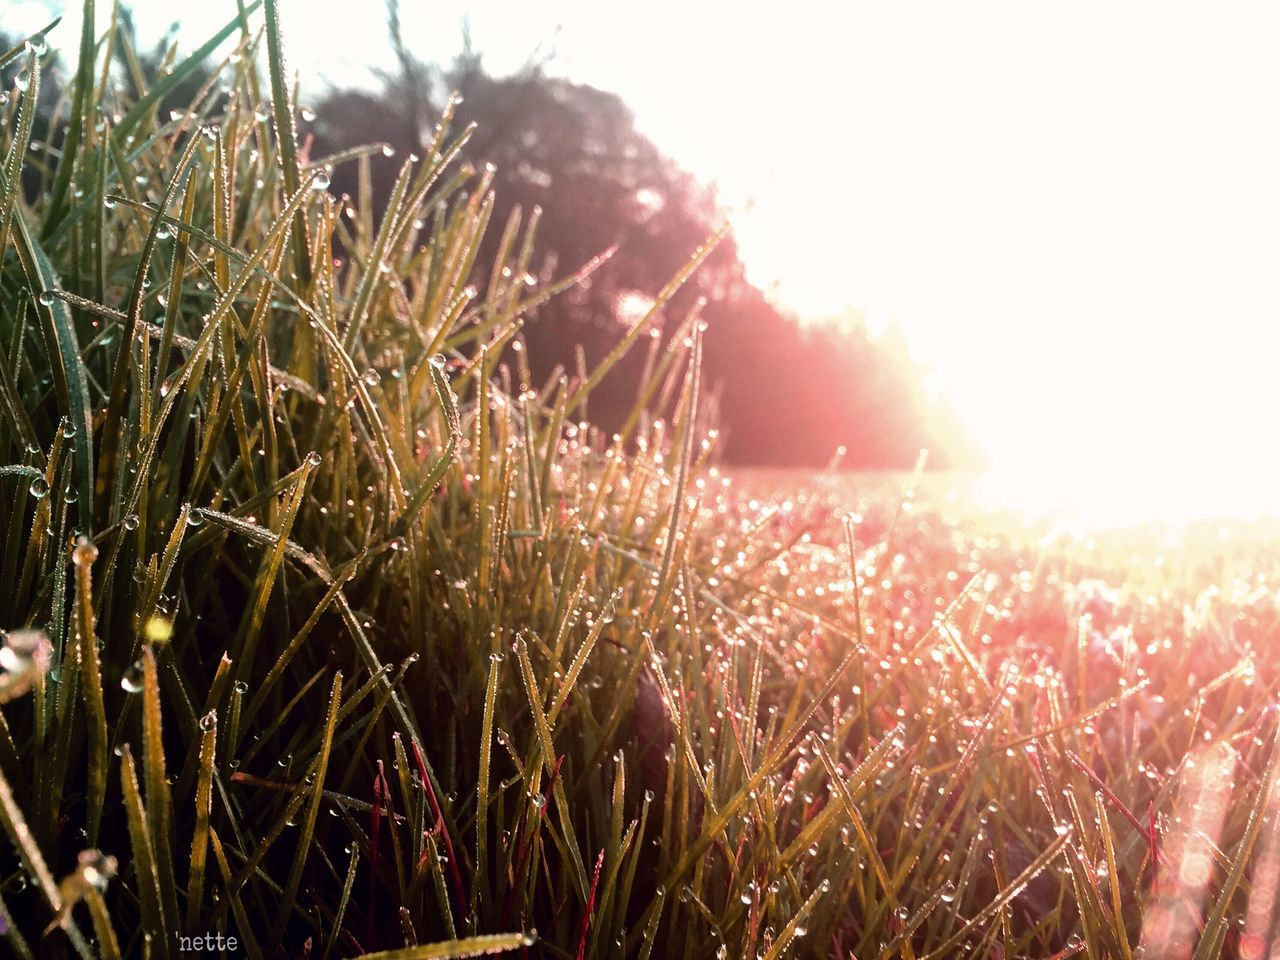 growth, field, nature, sunlight, plant, no people, outdoors, tranquility, grass, beauty in nature, day, sky, close-up, freshness